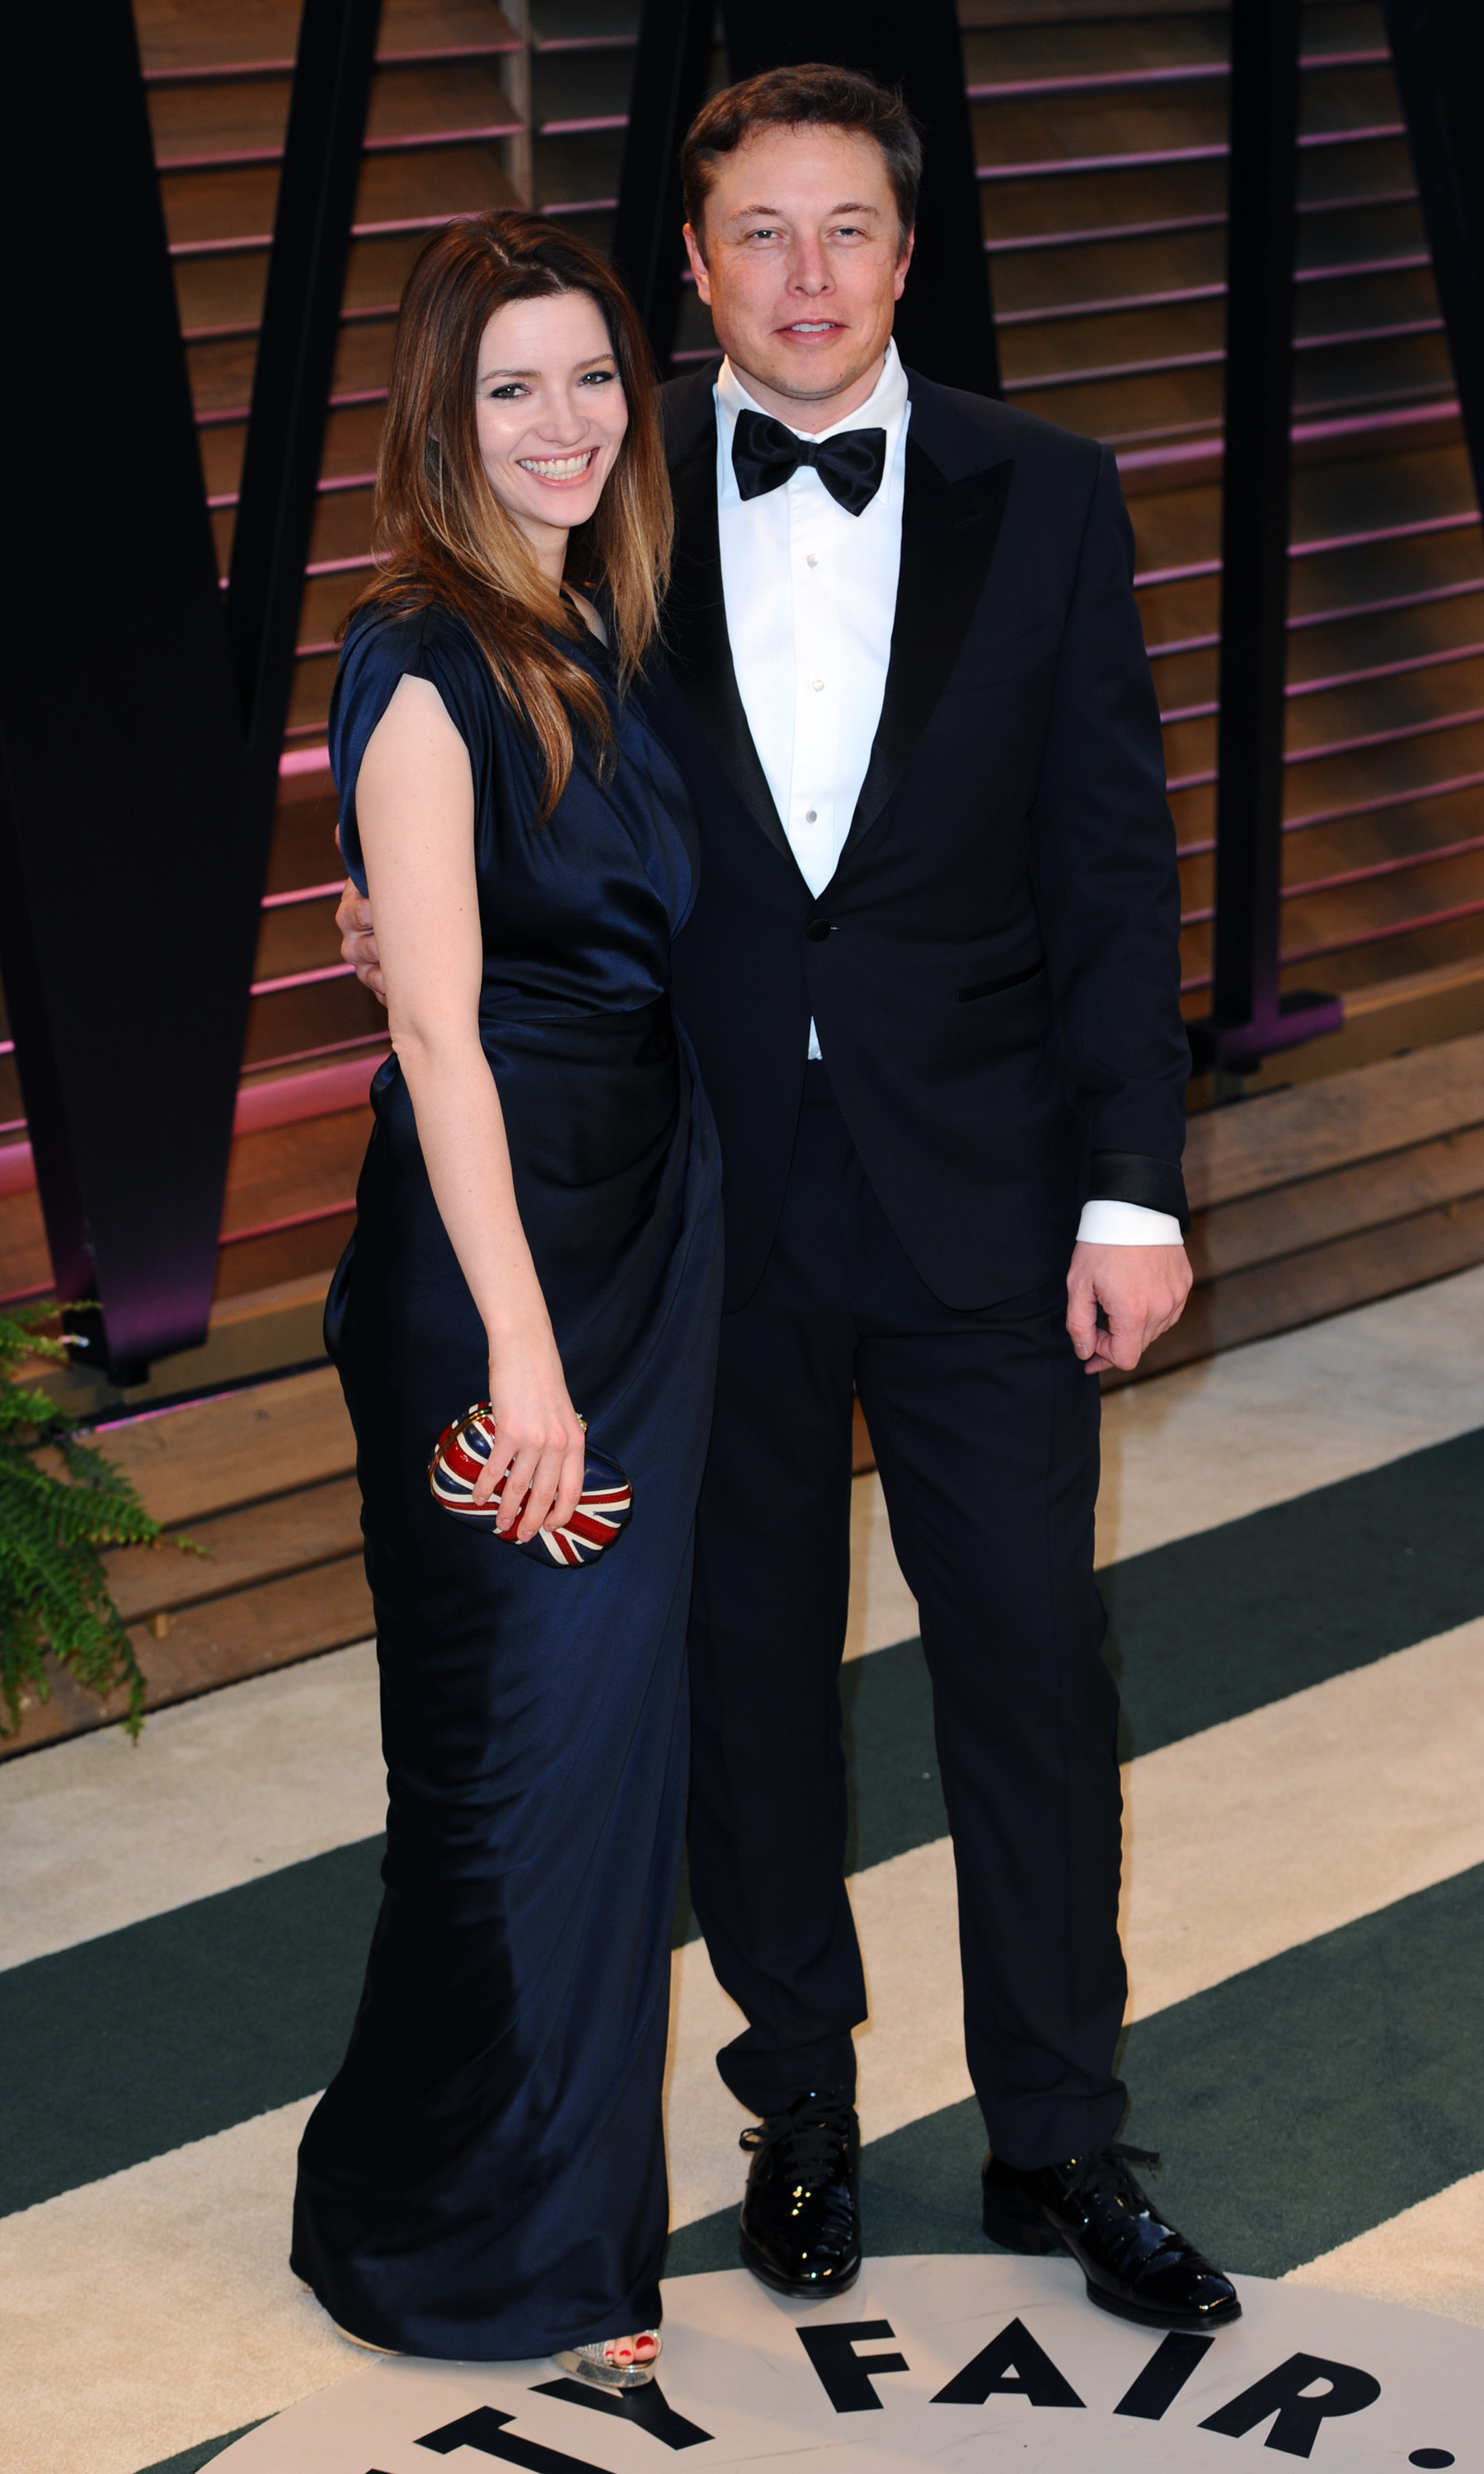 Talulah Riley (L) and CEO of Tesla Motors Elon Musk attend the 2014 Vanity Fair Oscar Party hosted by Graydon Carter on March 2, 2014 in West Hollywood, California.